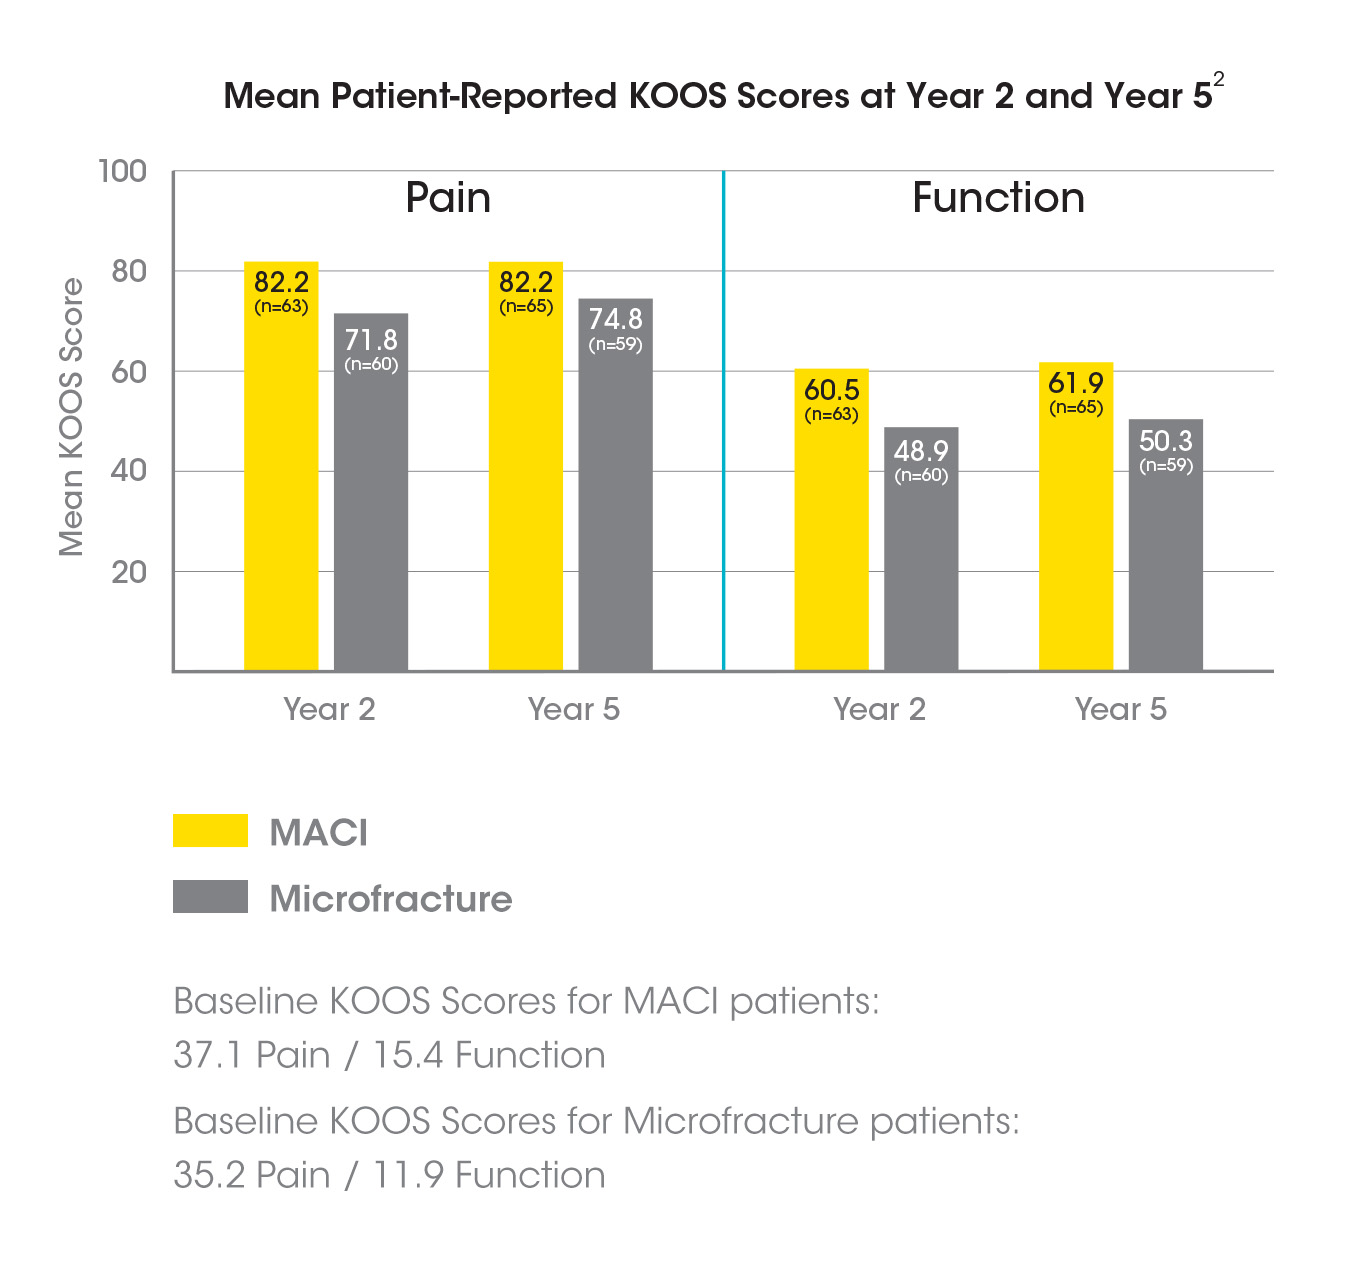 Mean Patient-Reported KOOS Scores at Year 2 and Year 5